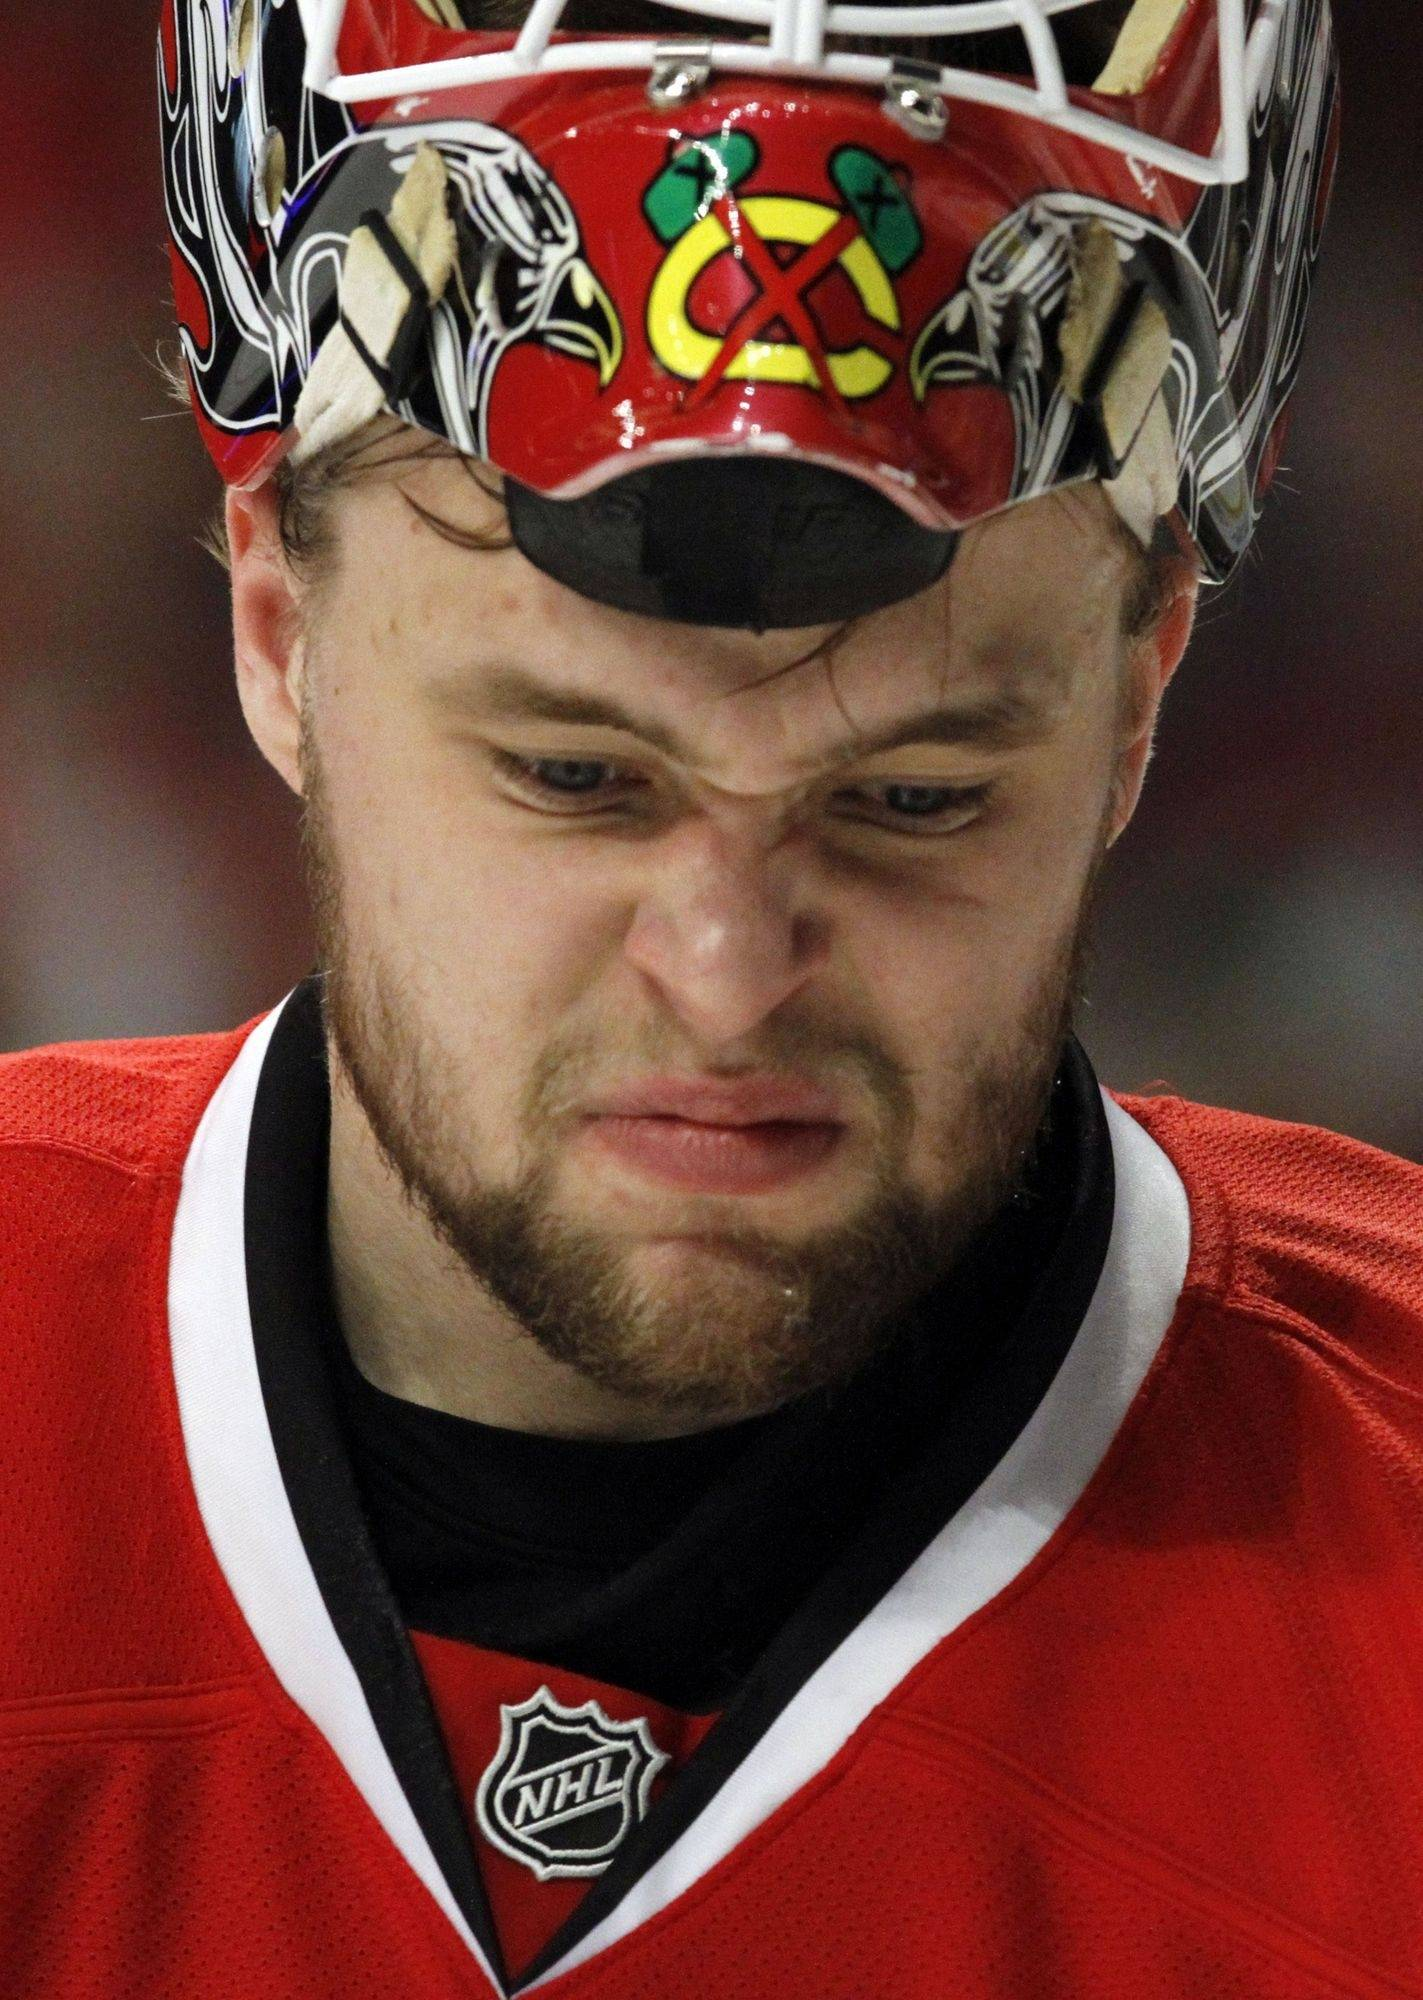 Chicago Blackhawks goalie Antti Niemi reacts as he looks down during the first period of Game 5 of an NHL hockey Western Conference second-round playoff series against the Vancouver Canucks Sunday, May 9, 2010, in Chicago.